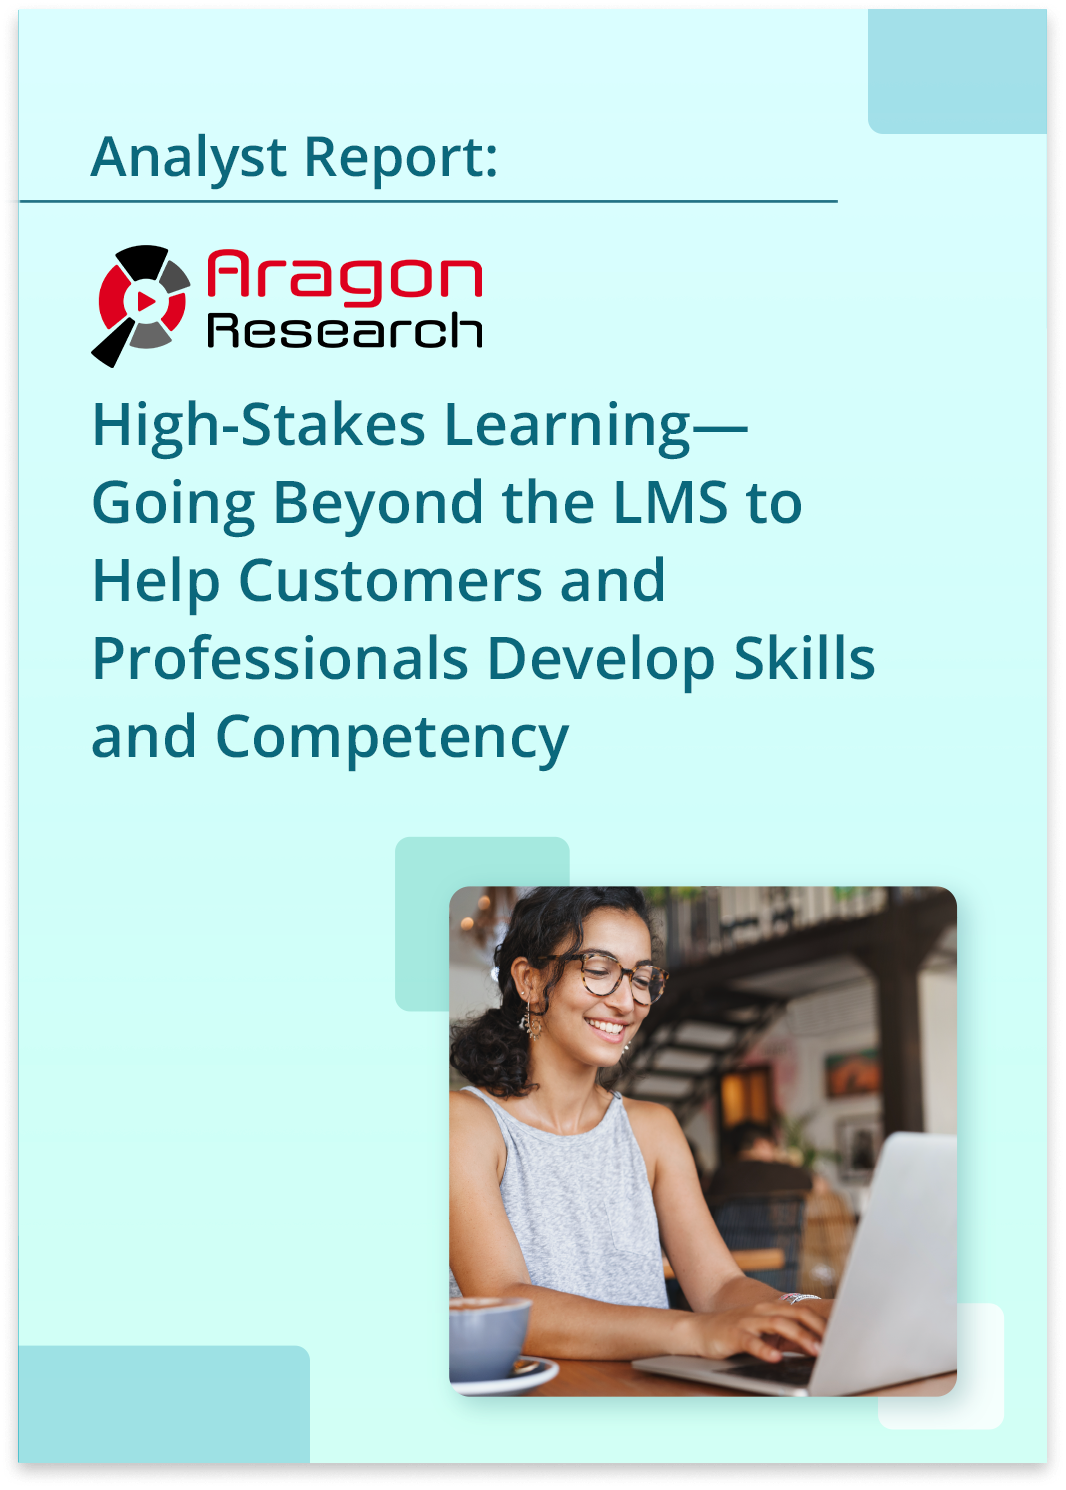 Aragon_Skills_Competency_Analyst_Report_LP